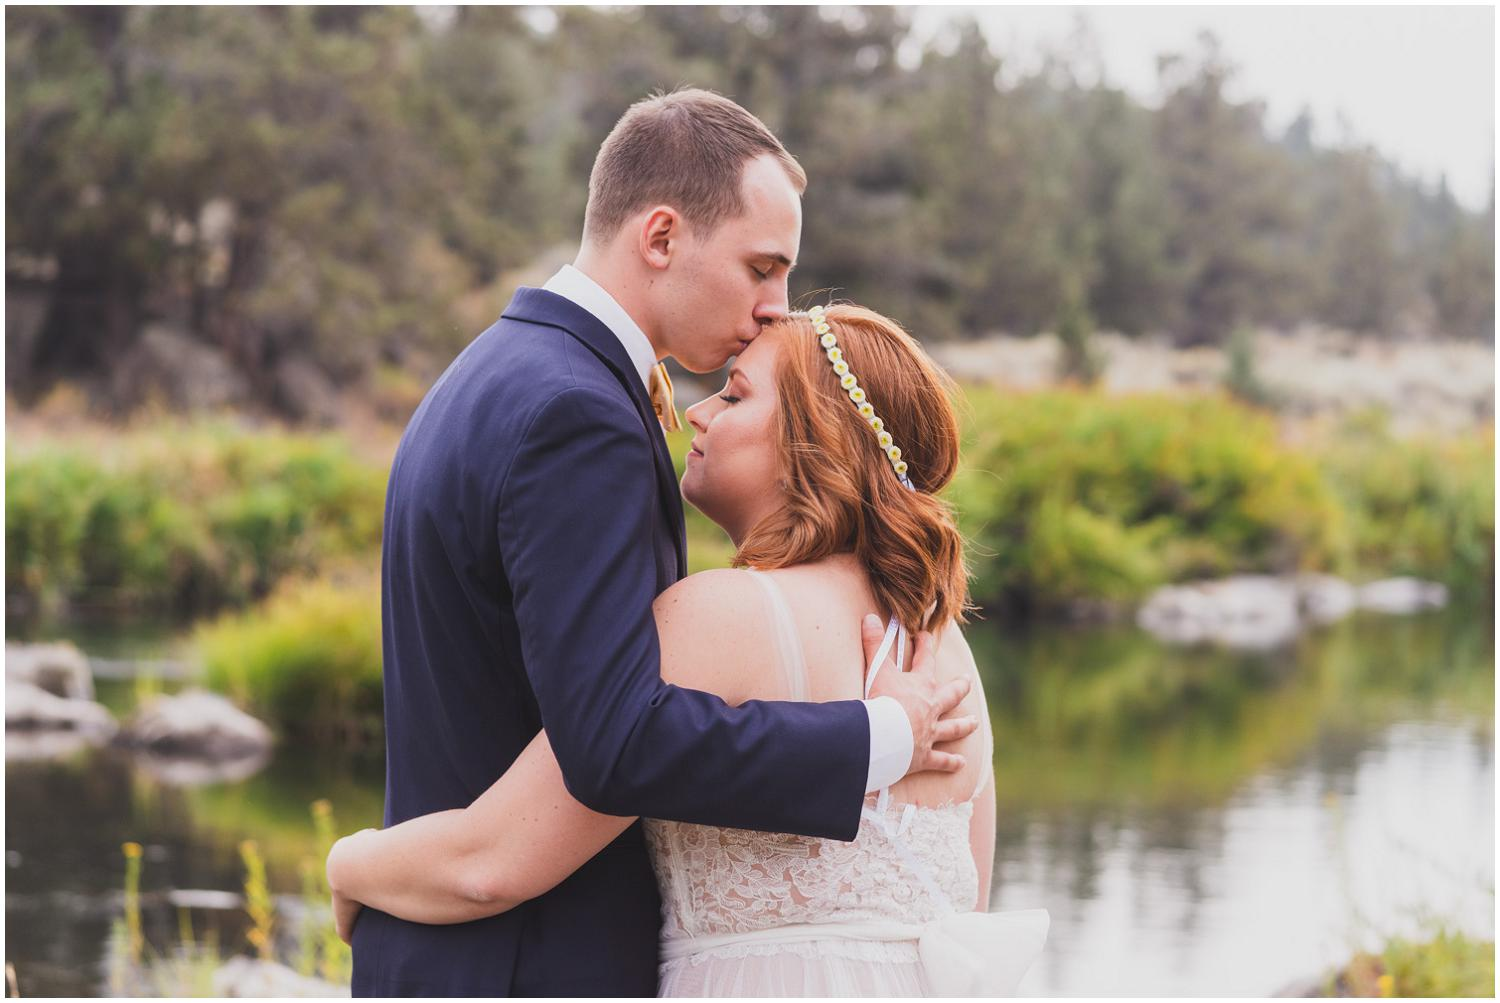 groom tenderly kisses bride's forehead while they look over the river